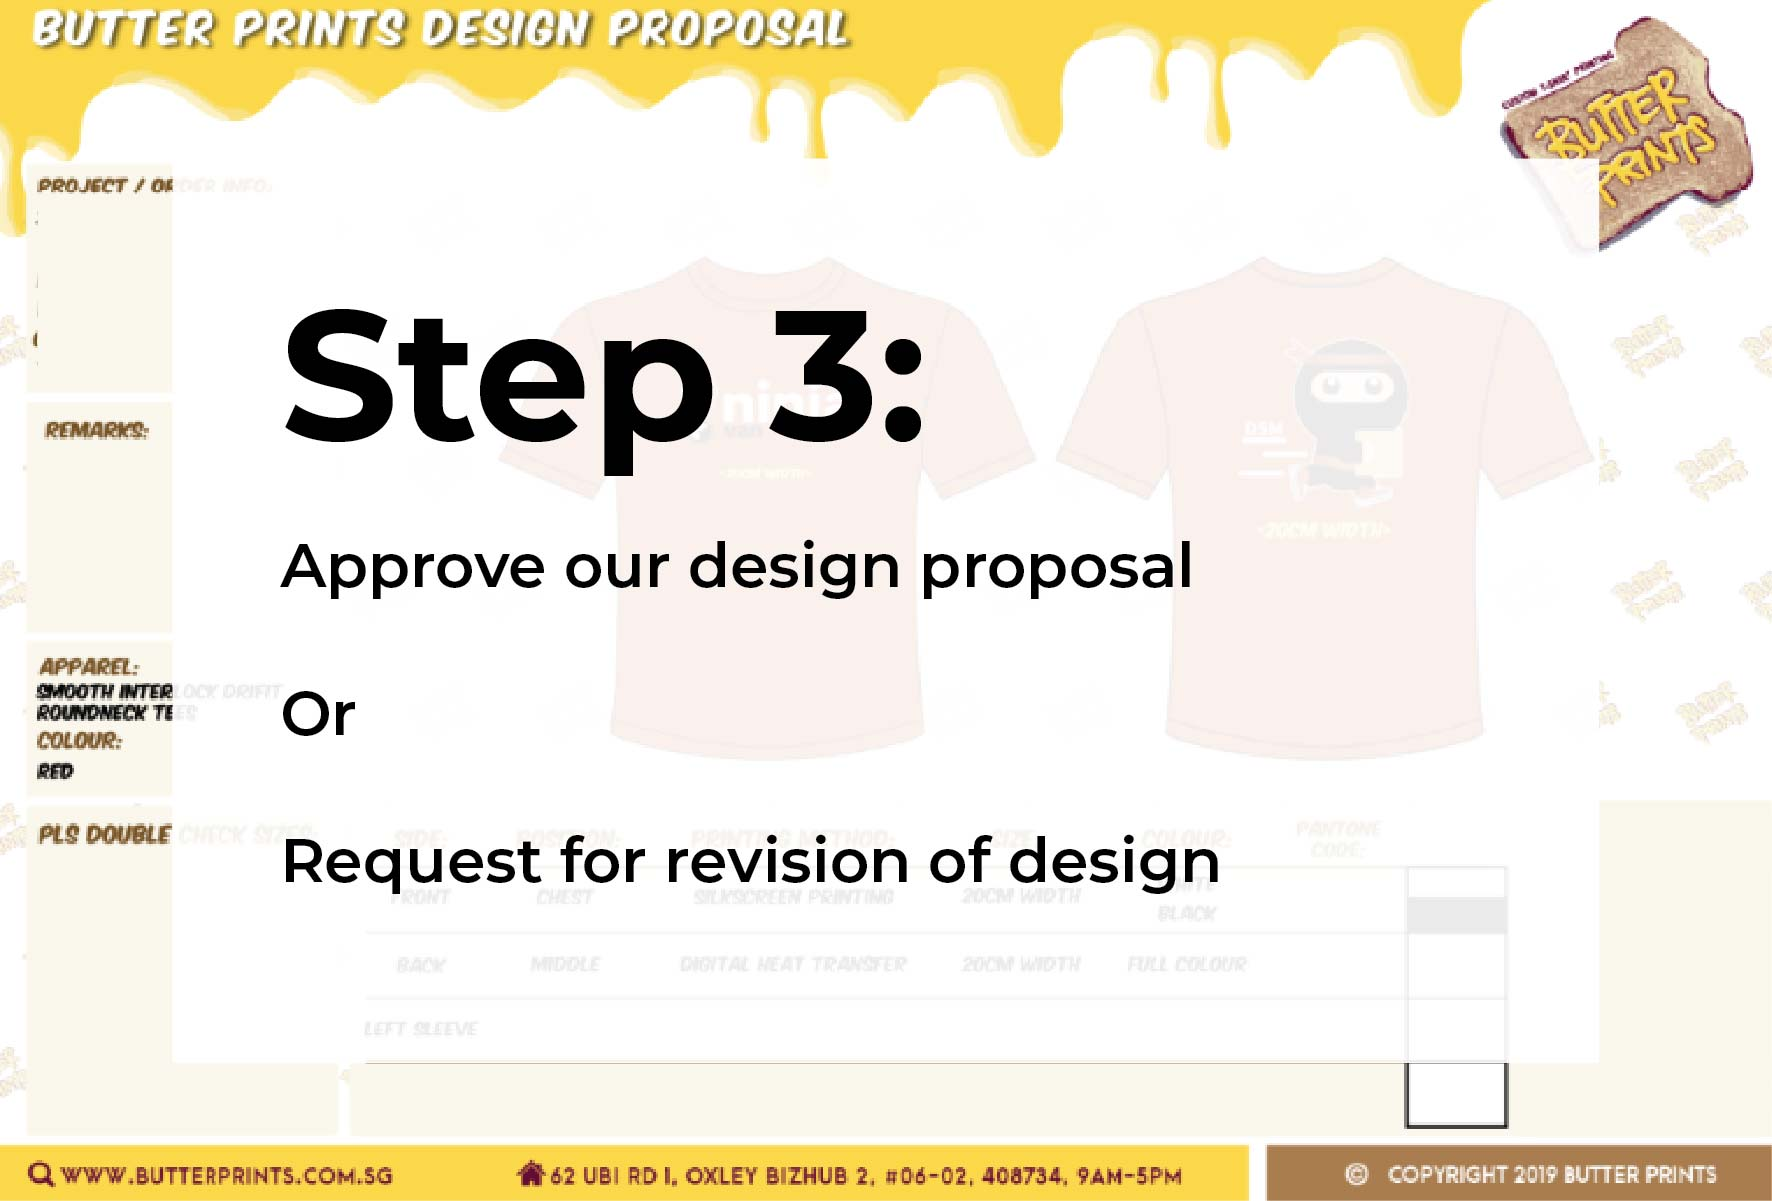 Step 3: Approve or Revise our Design Proposal.